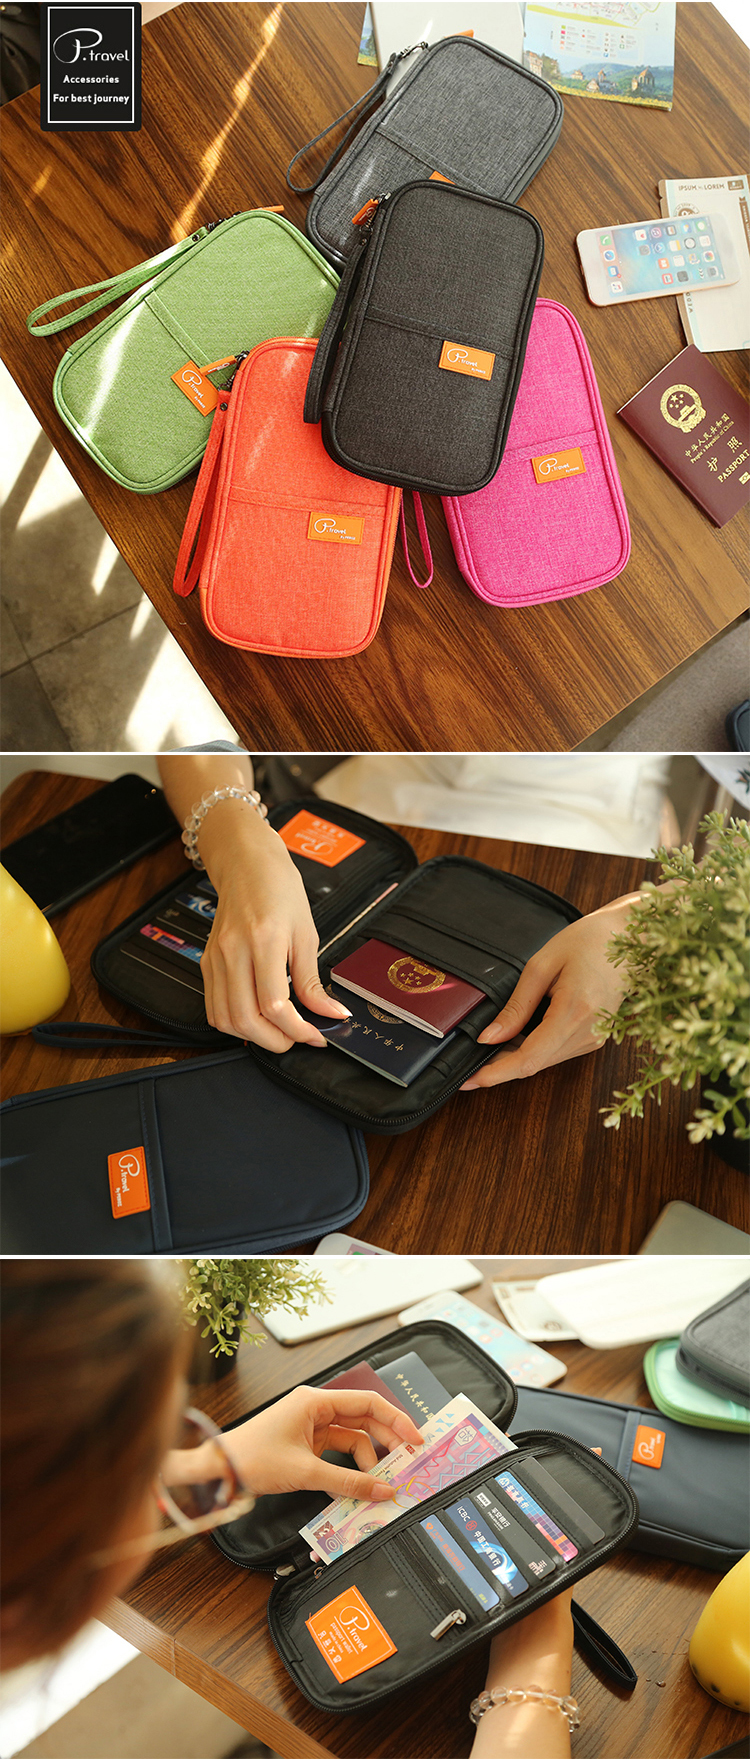 P.travel High Quality Fashionable Family Men Ladies Black Nylon Rfid Passport Holder Travel Wallets